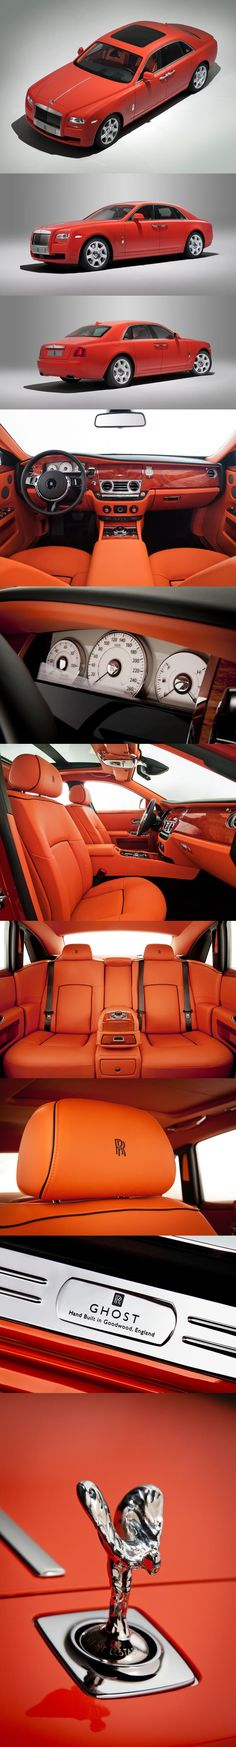 Rolls Royce Ghost roars in a customized rustic red makeover